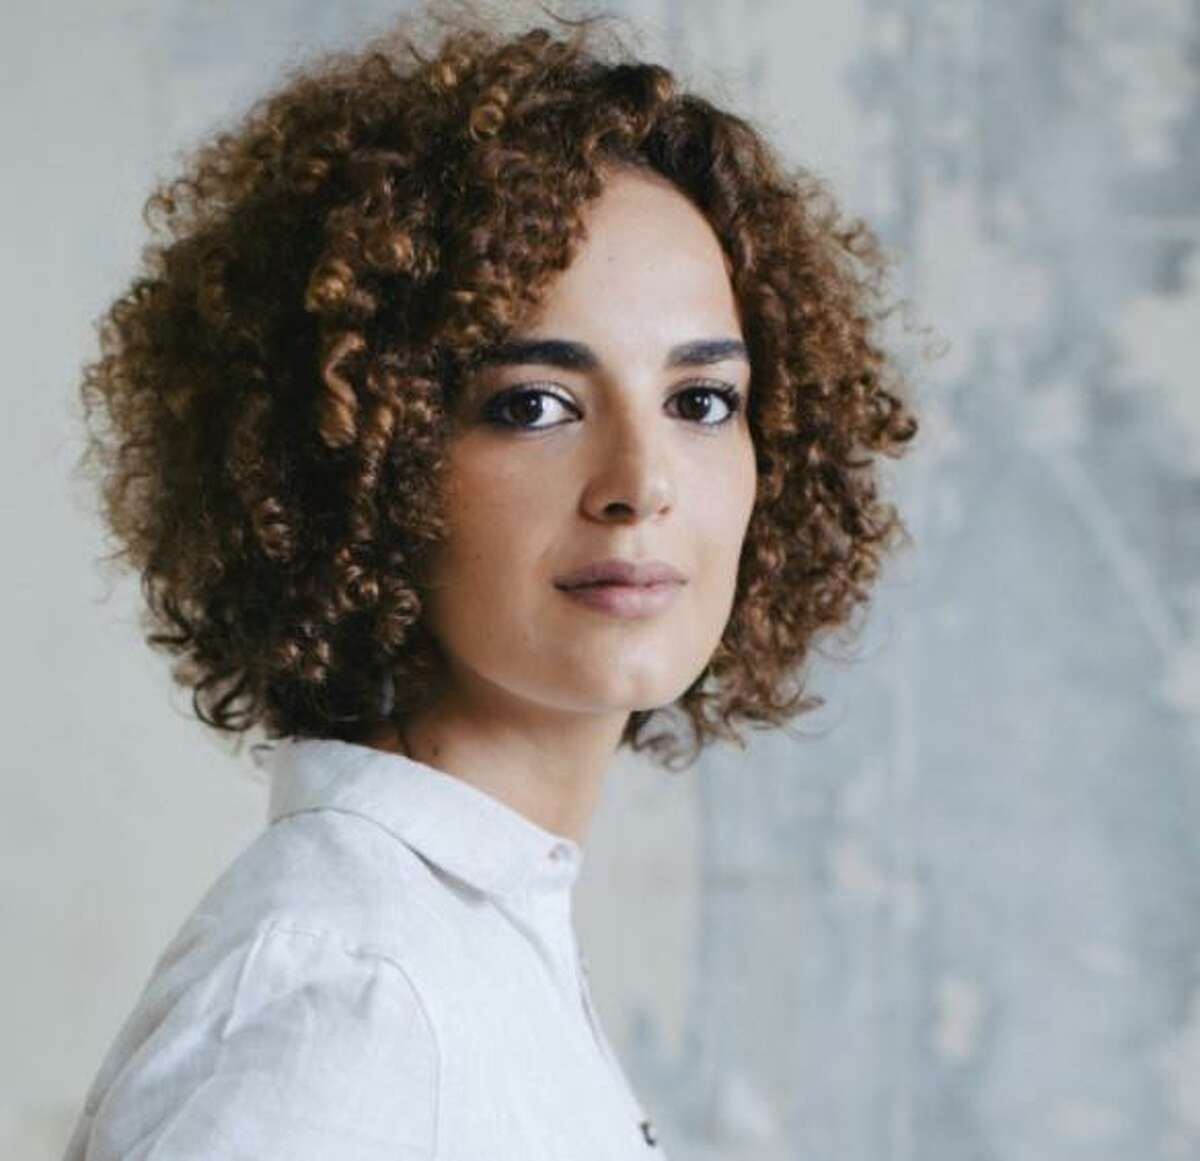 French-Moroccan author Leila Slimani was awarded France's most prestigious literary prize (the Prix Goncourt) for